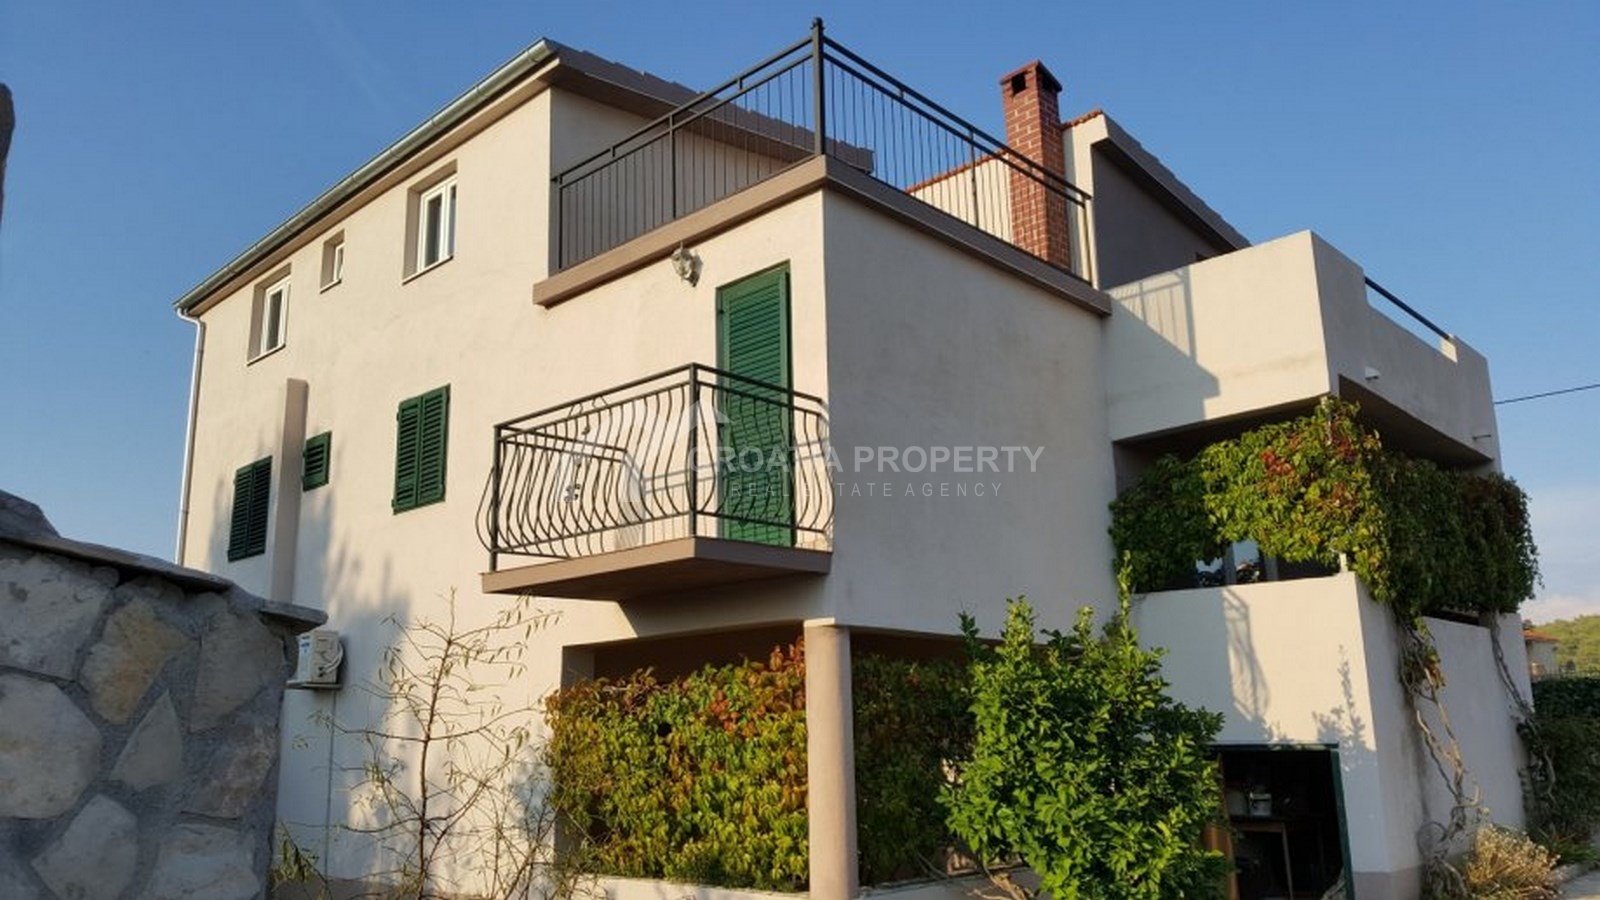 Detached house for sale Solta